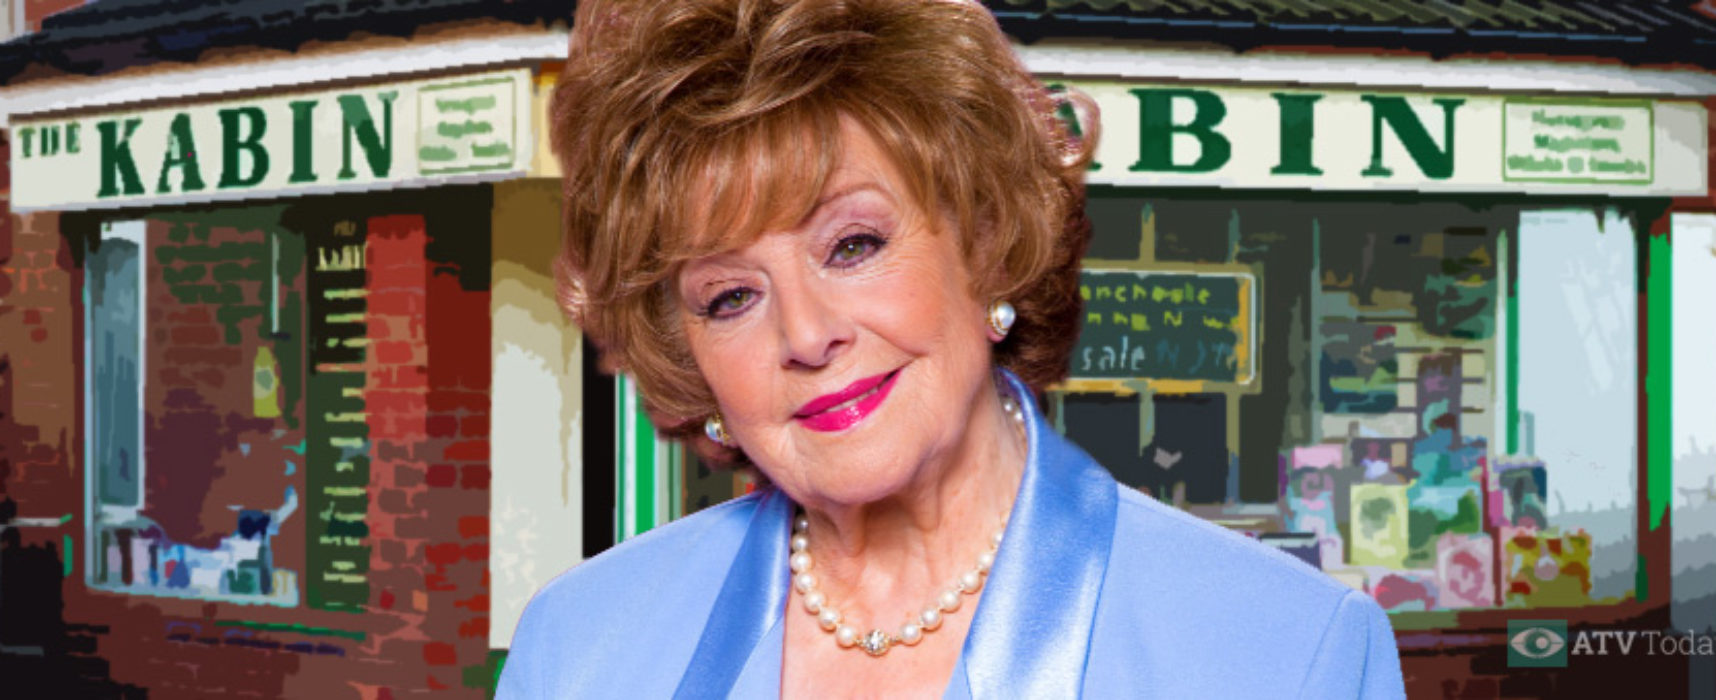 Coronation Street reaches 10,000 episodes with hour long special